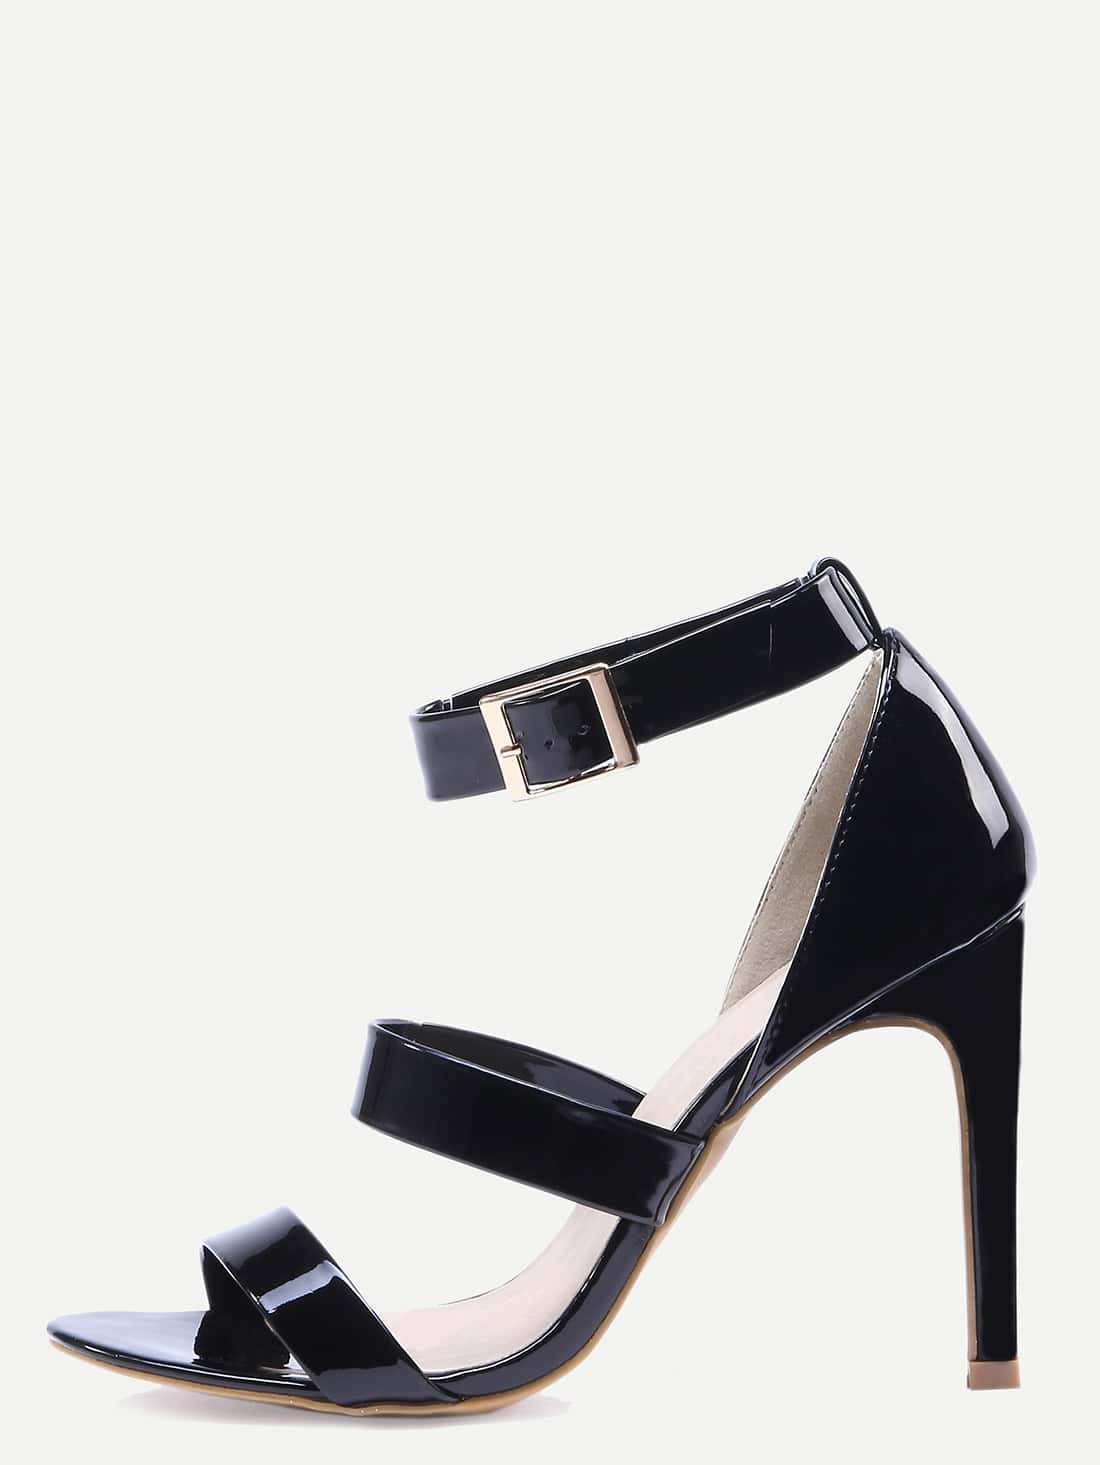 Faux Patent Leather Strappy Sandals - Black shoes16050655